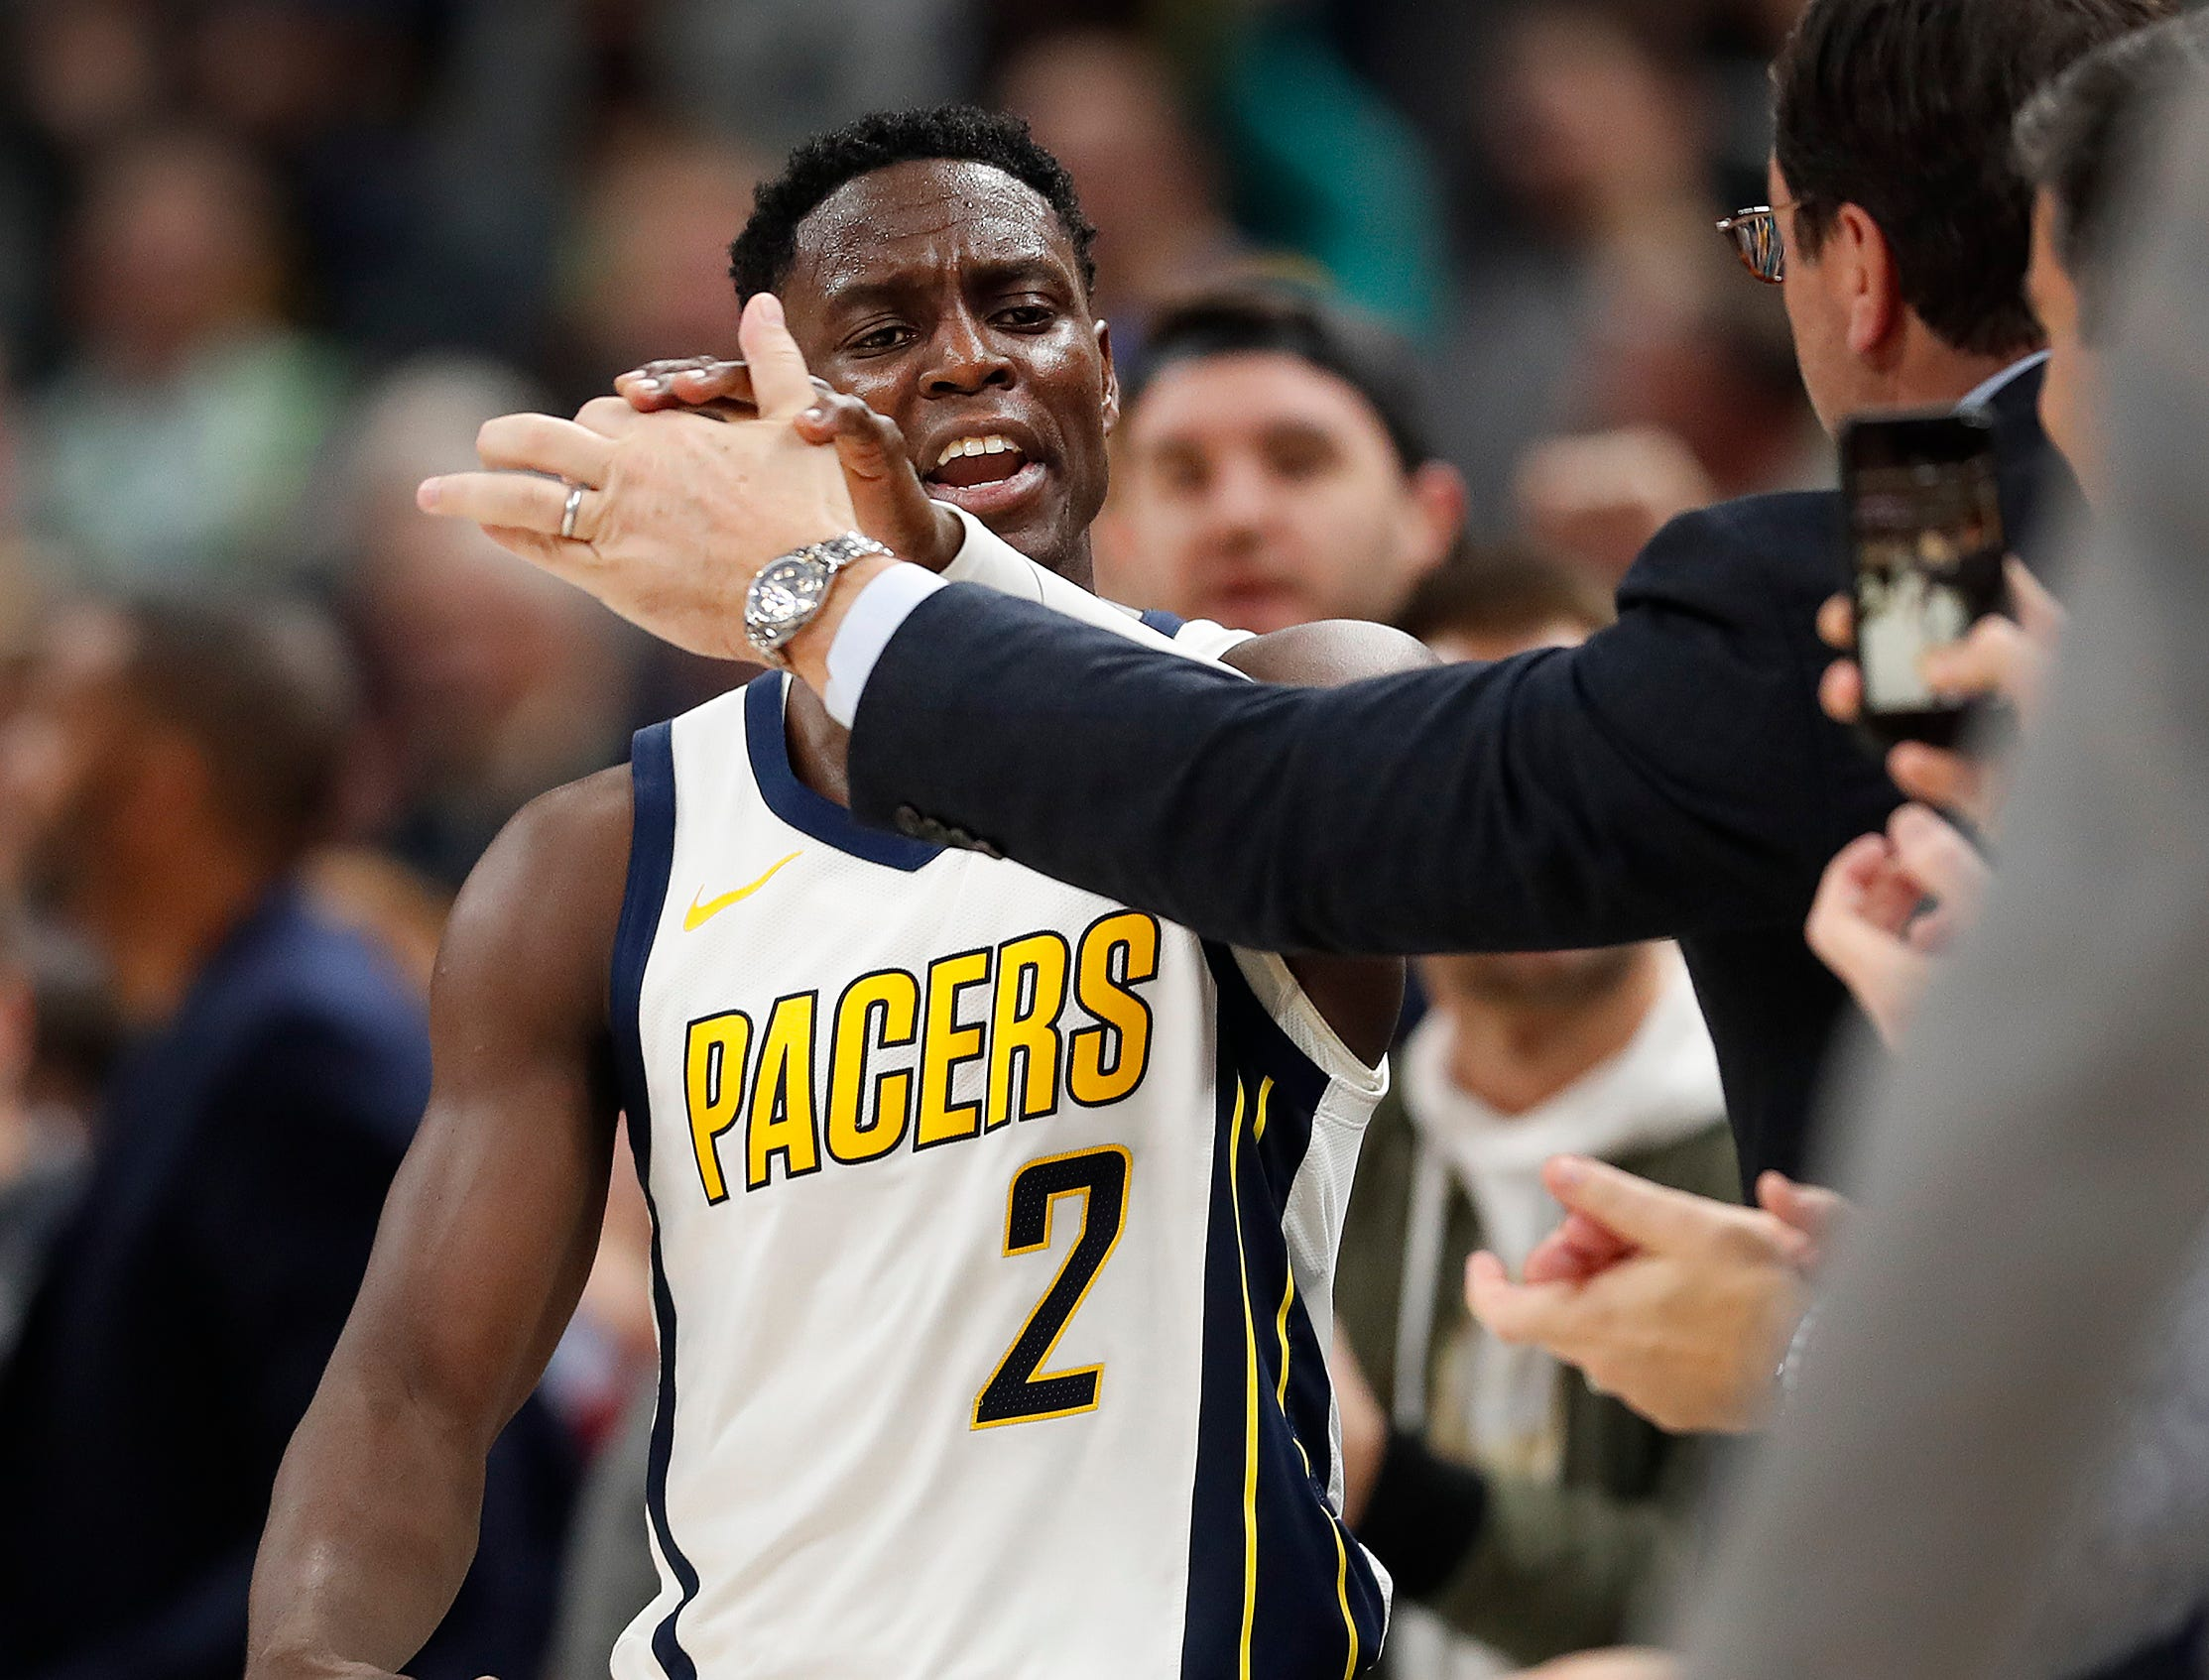 Indiana Pacers guard Darren Collison (2) high fives Pacers fans in the second half of their game at Bankers Life Fieldhouse on Thursday, Mar. 14, 2019. The Pacers defeated the Thunder 108-106.